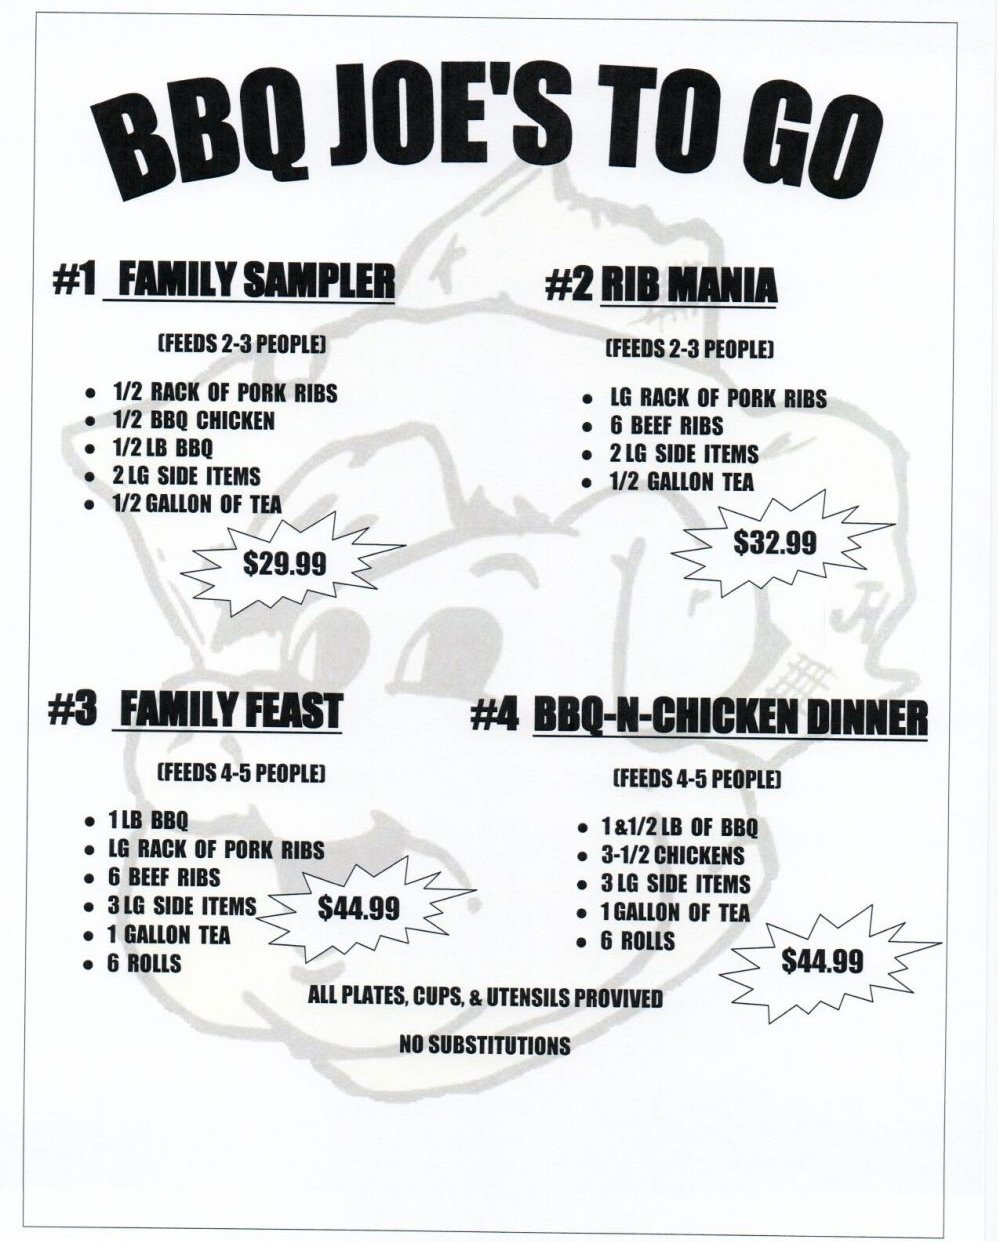 BBQ Joe's To Go